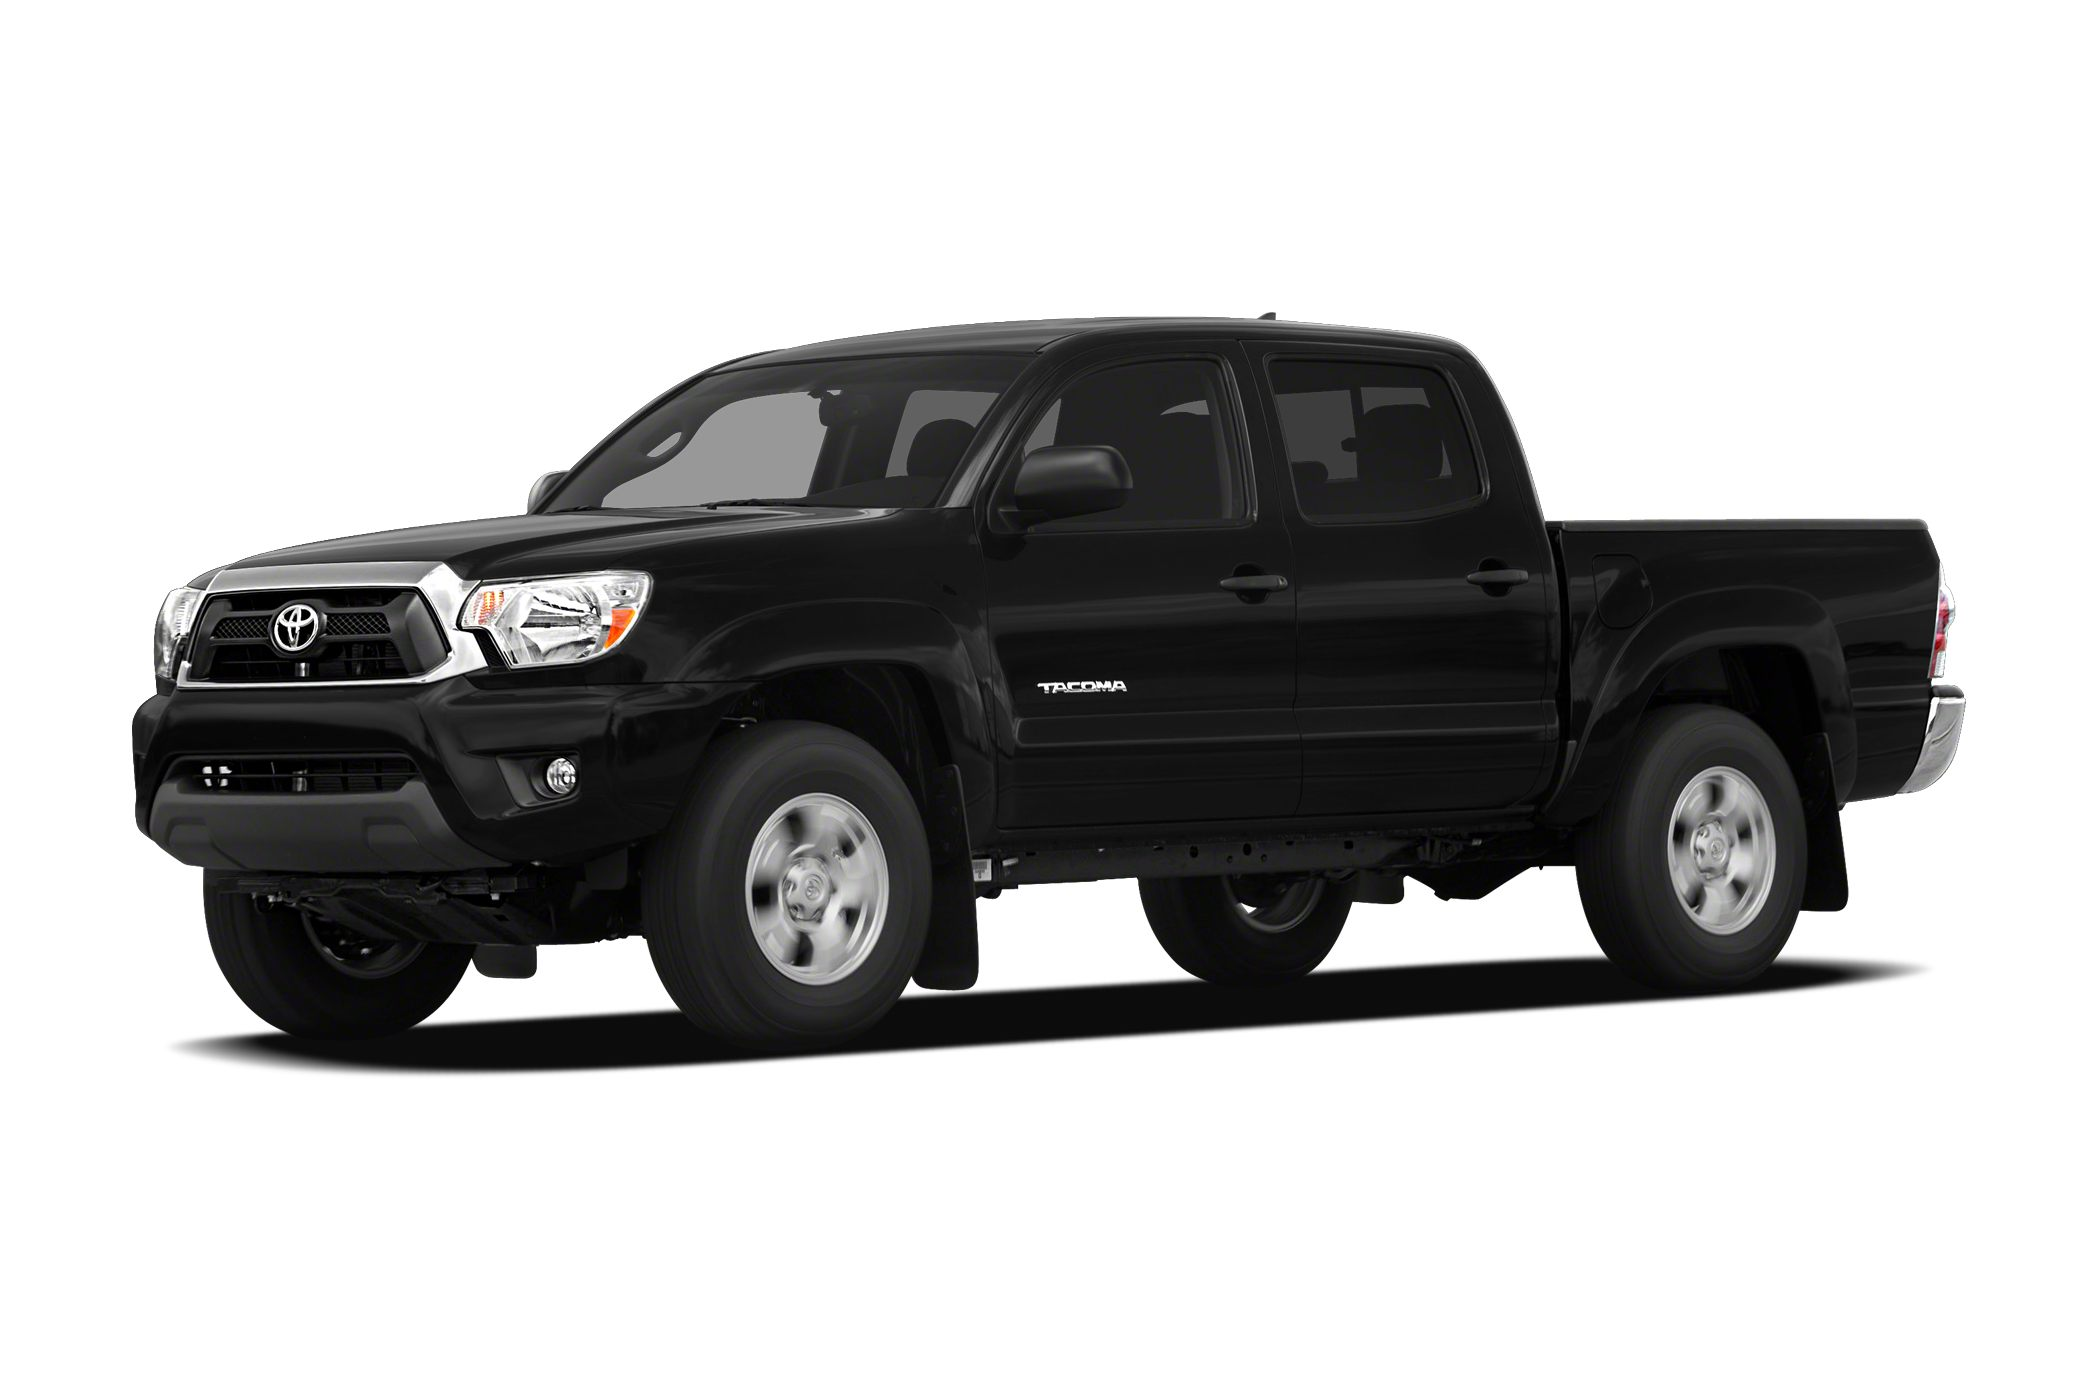 models double tacoma a cab car blog new wallpapers ta hd toyota and of